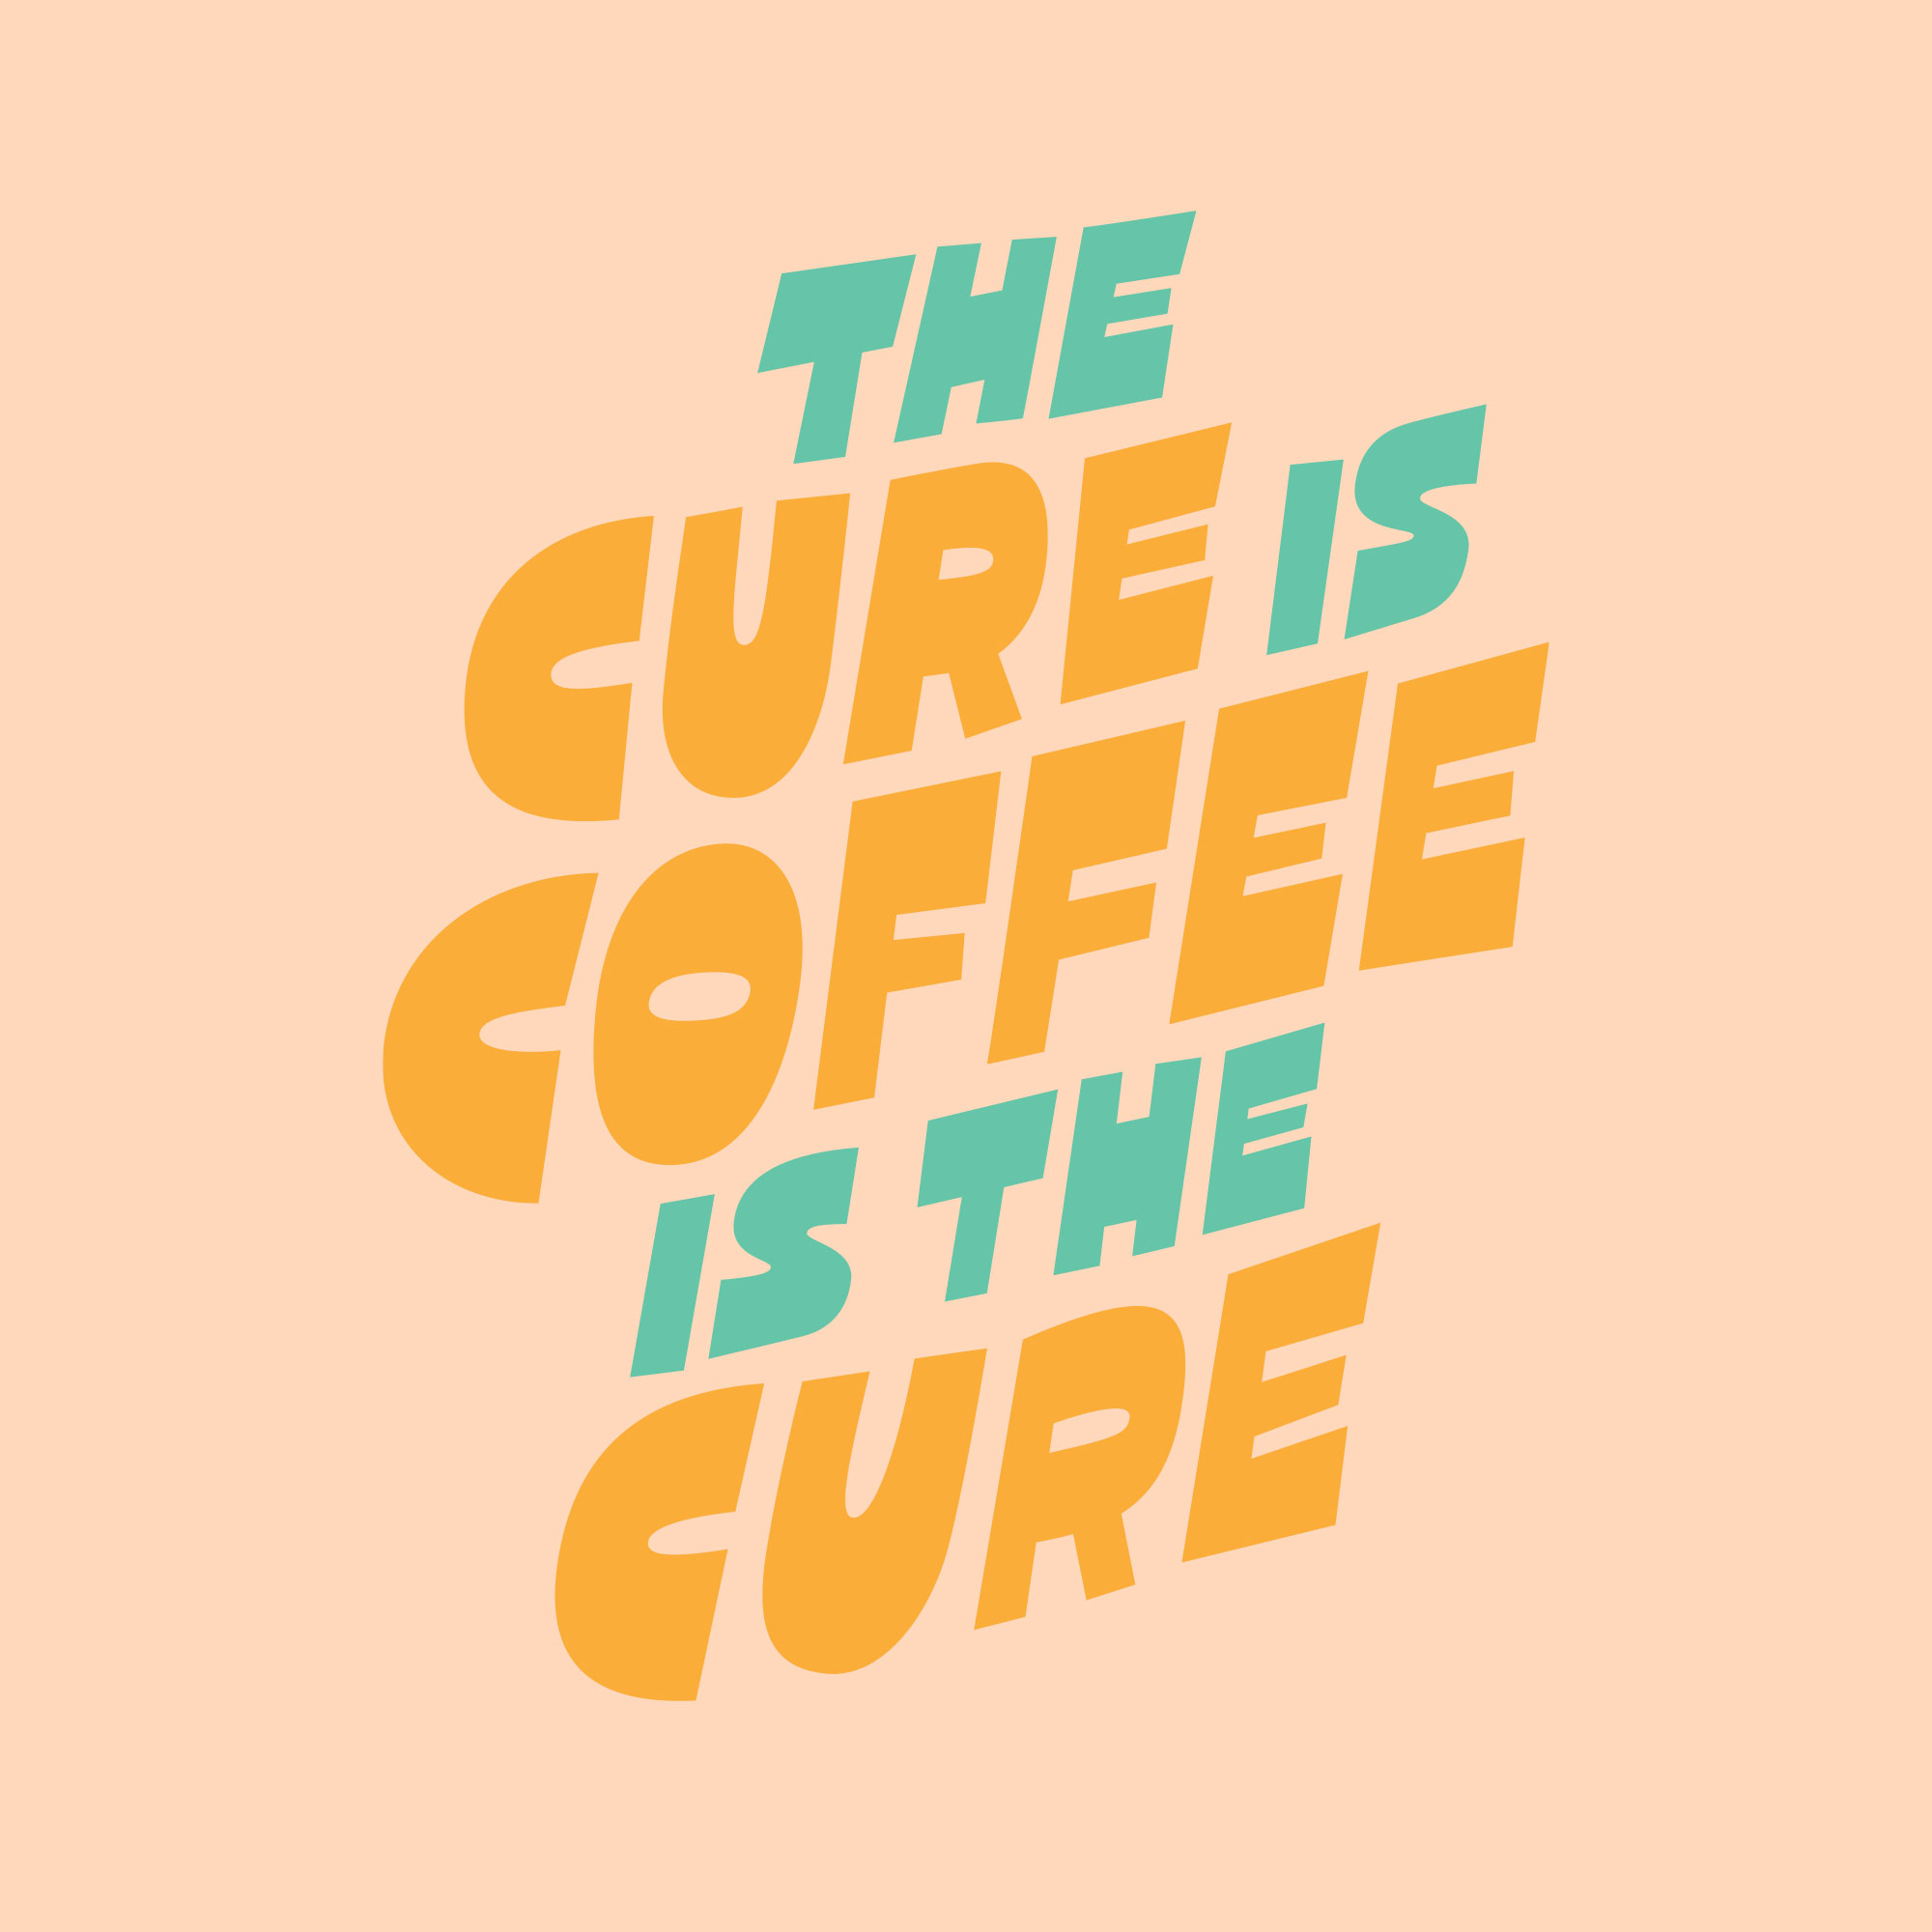 Chonky, blocky lettering that says The Cure Is Coffee Is The Cure, in yellow and aqua.